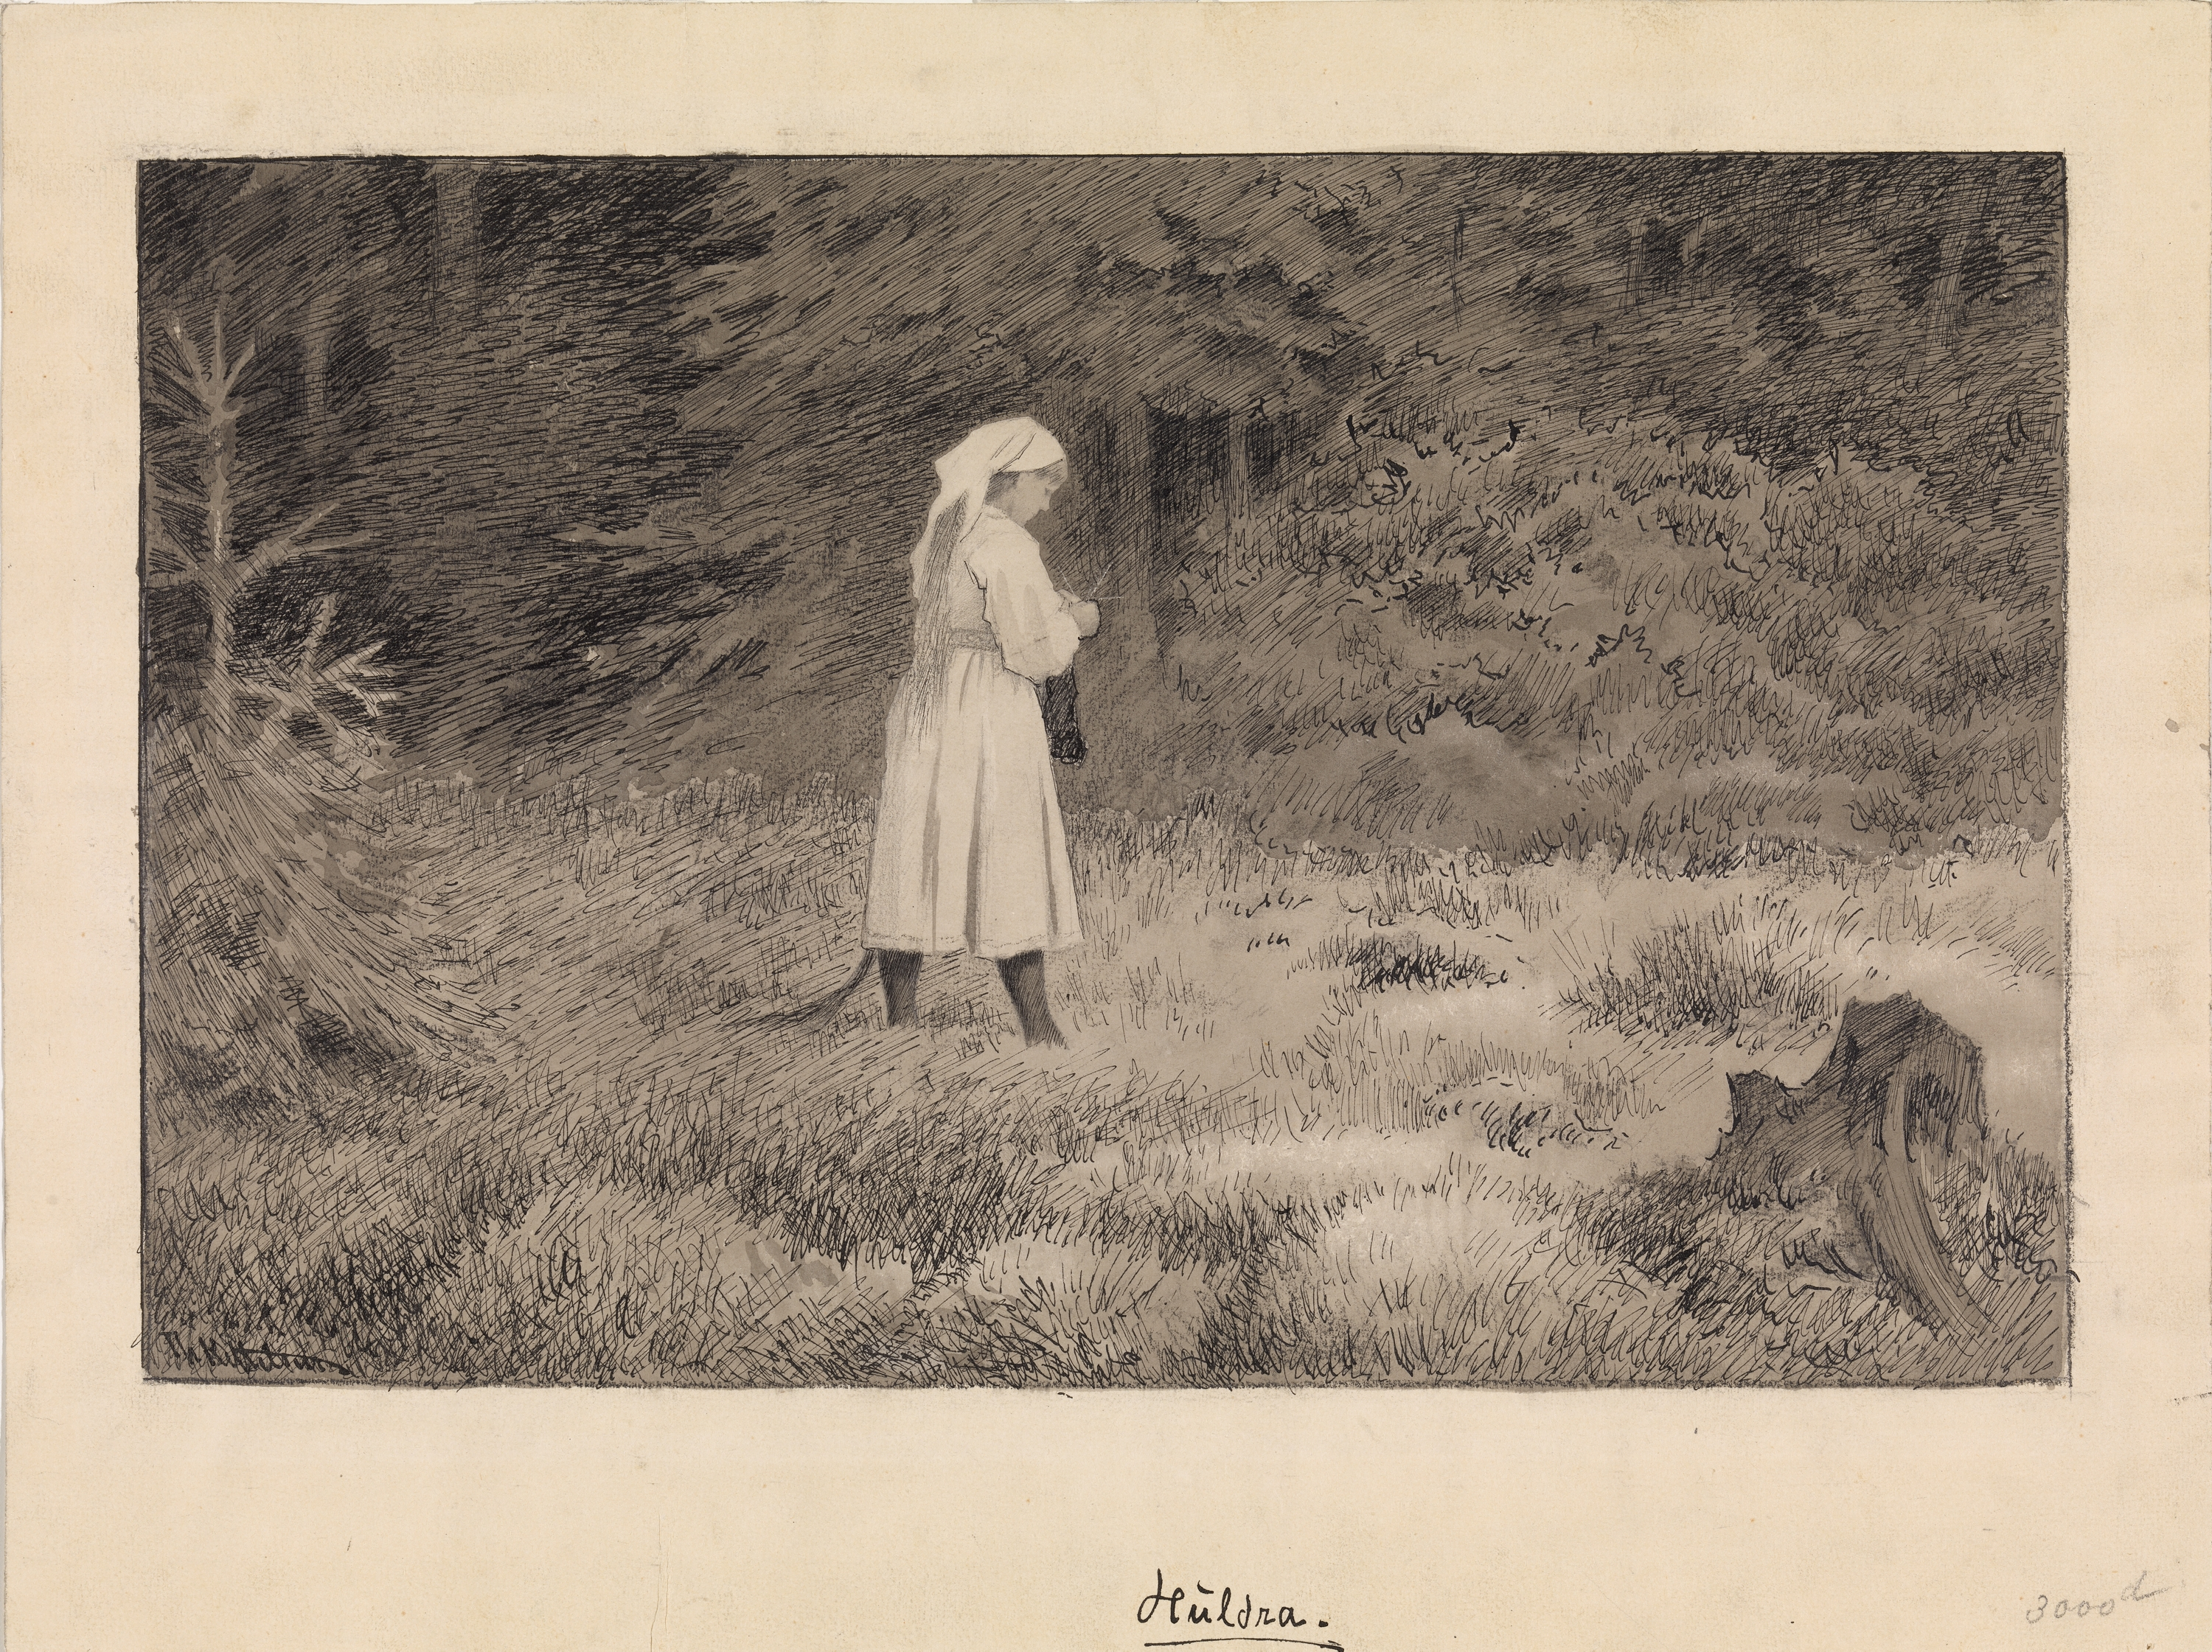 The typical hulder, by Theodor Kittelsen Source http://samling.nasjonalmuseet.no/no/object/NG.K_H.B.06921